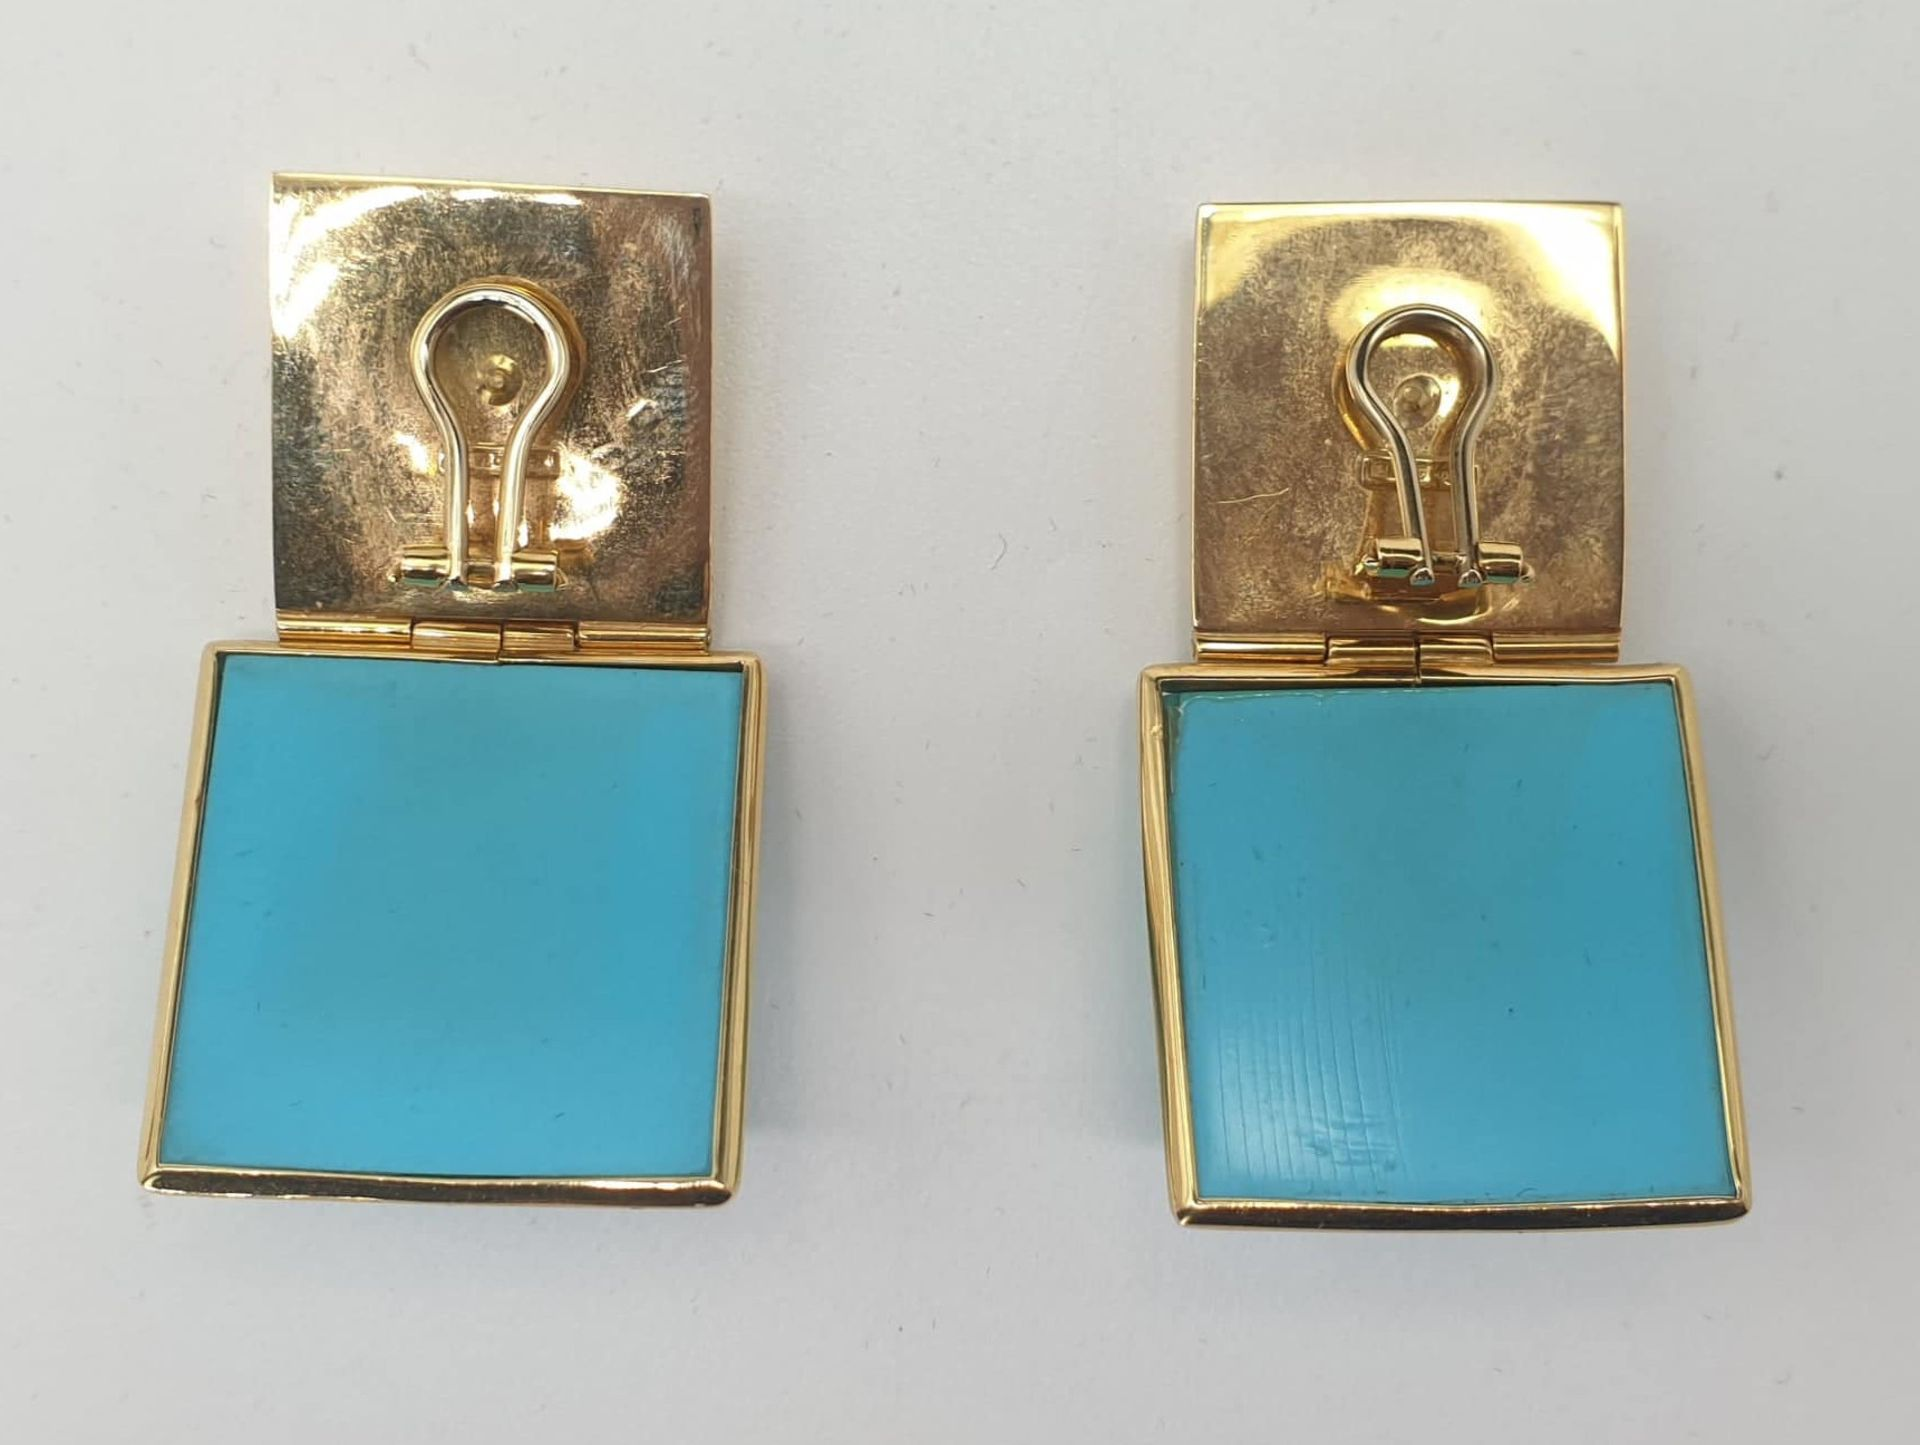 Ring & Ear Clips | Turquoise | 750 (18k) Gold - Image 5 of 6